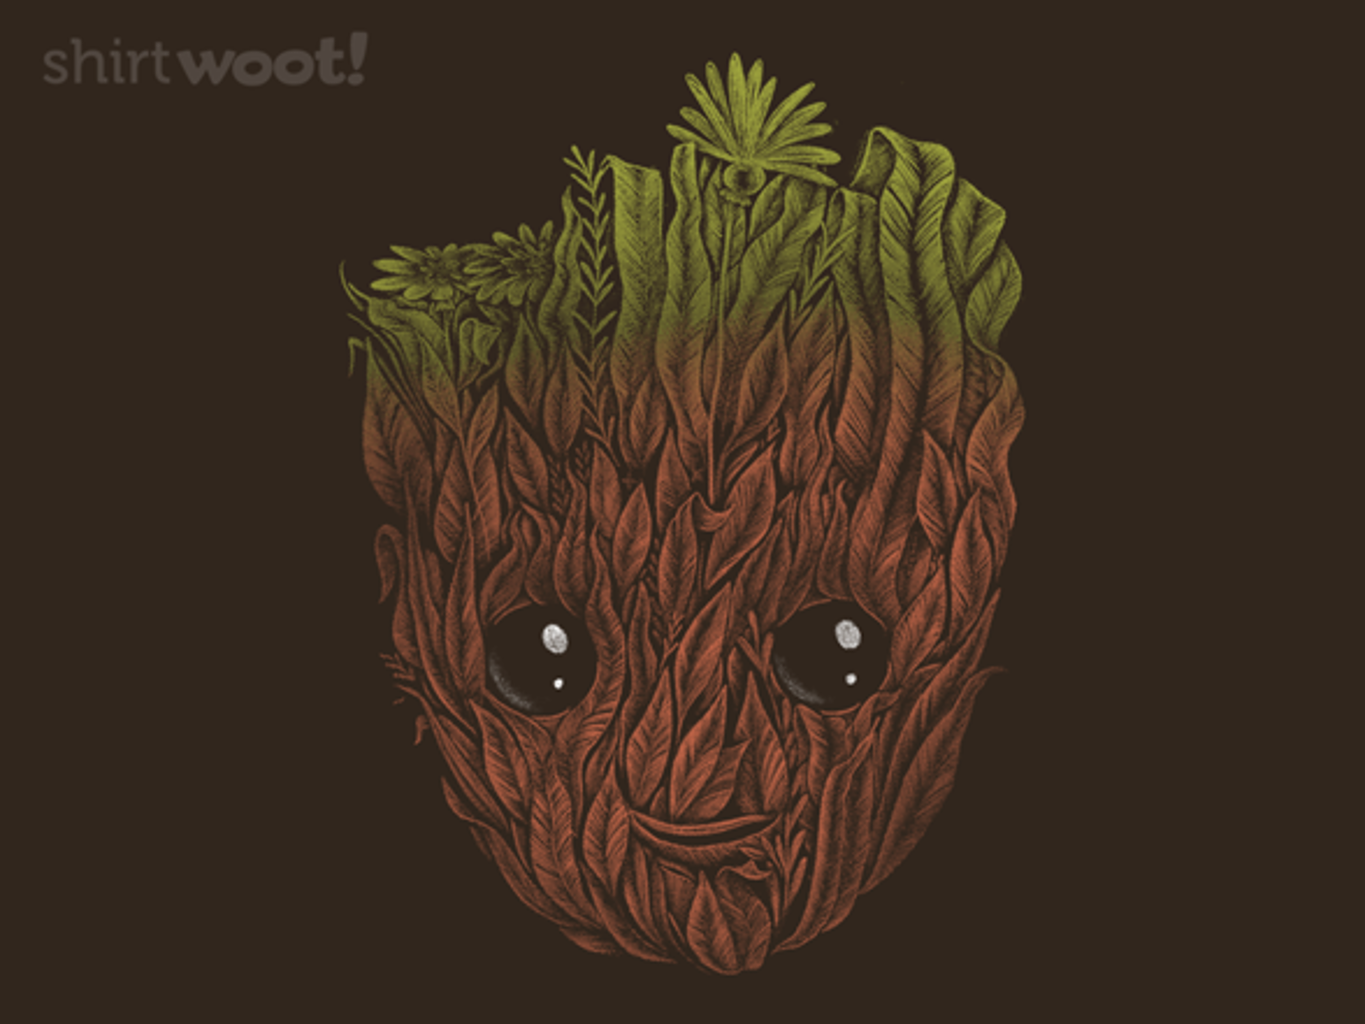 Woot!: I Am Root